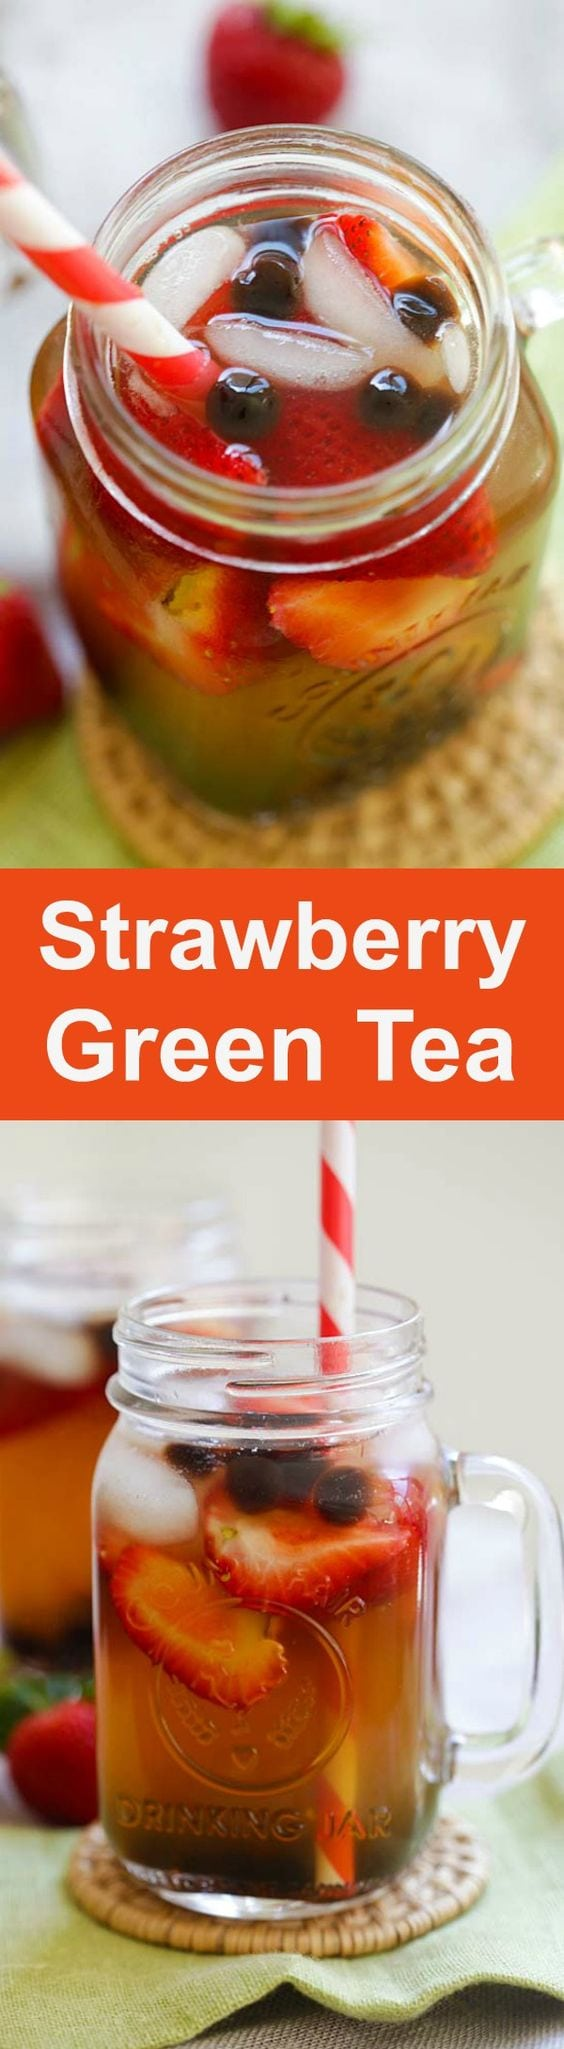 Strawberry Green Tea - healthy and refreshing green tea with strawberry and tapioca pearl boba. Perfect for summer | rasamalaysia.com